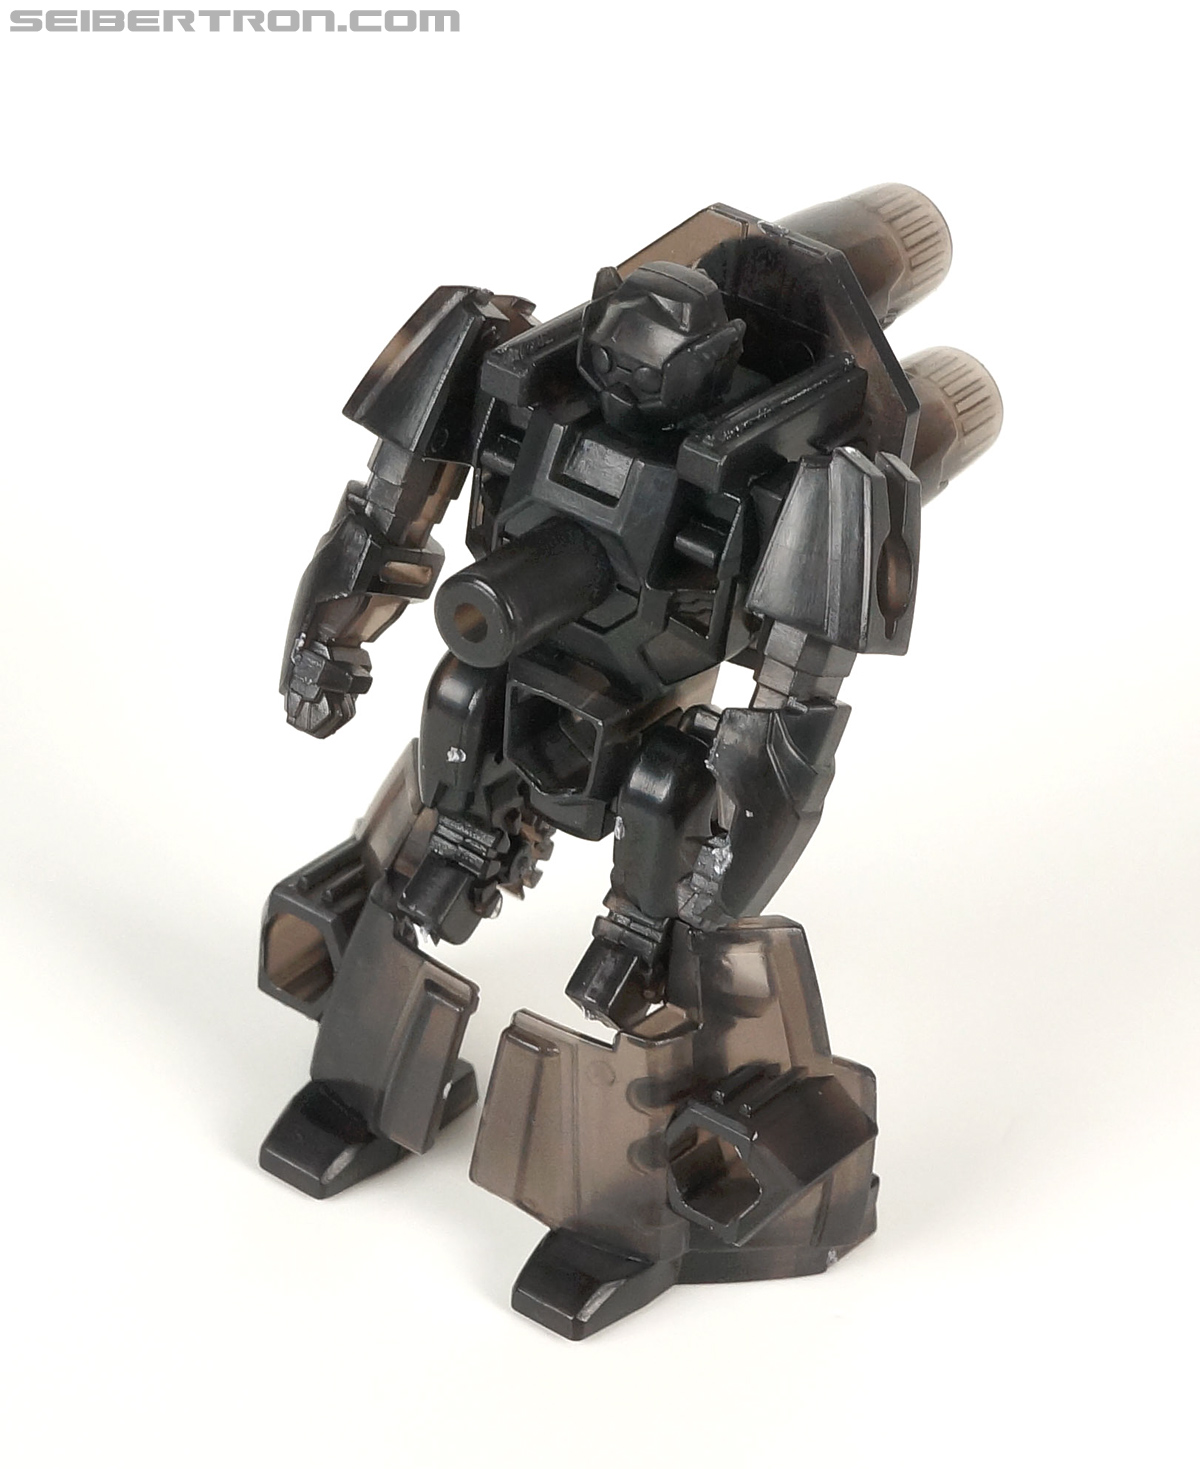 Transformers Arms Micron Shadow C.L. (Image #55 of 85)